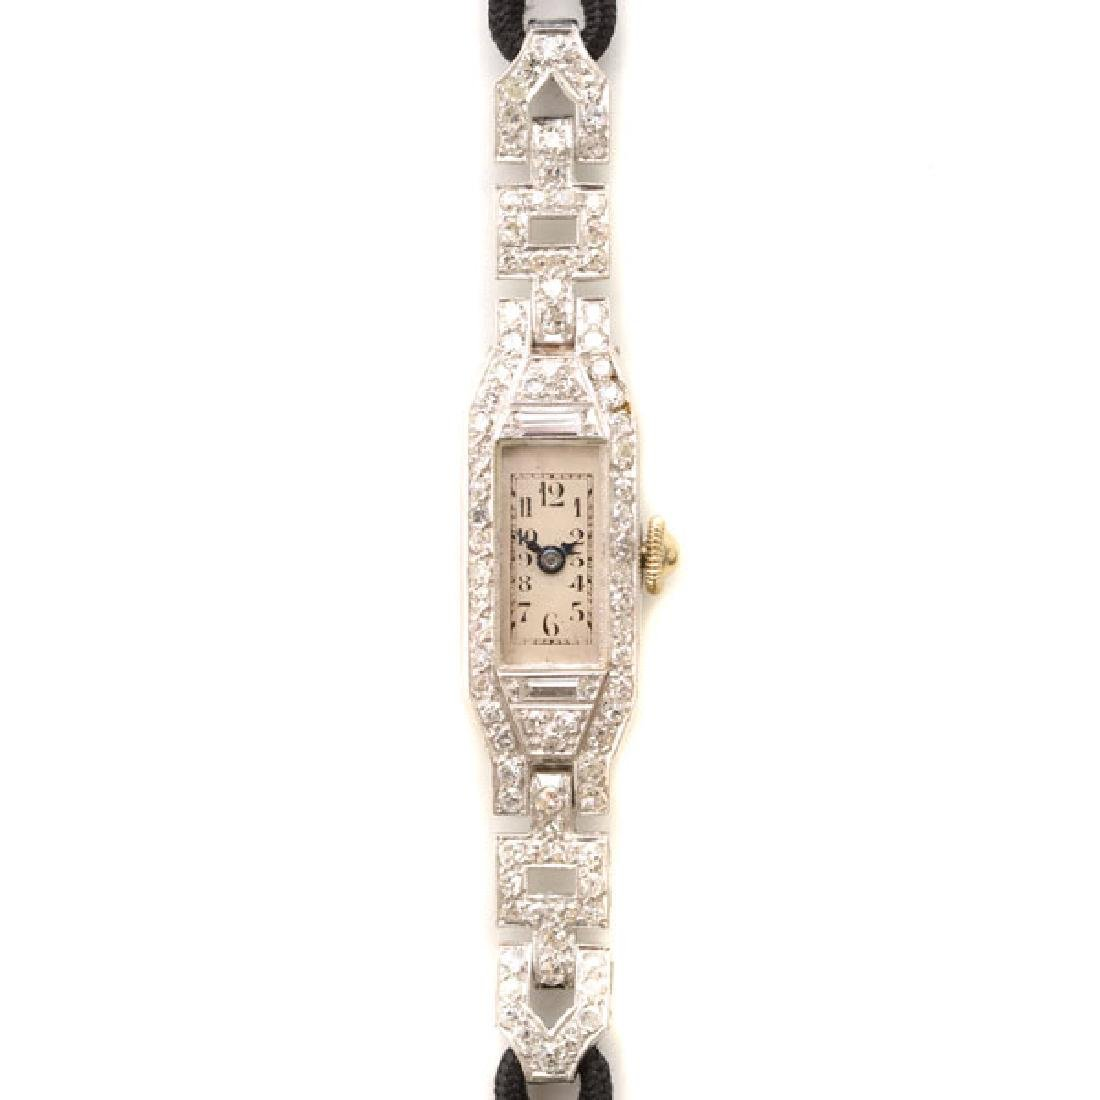 Ladies Art Deco Diamond, Platinum, Nylon Wristwatch.